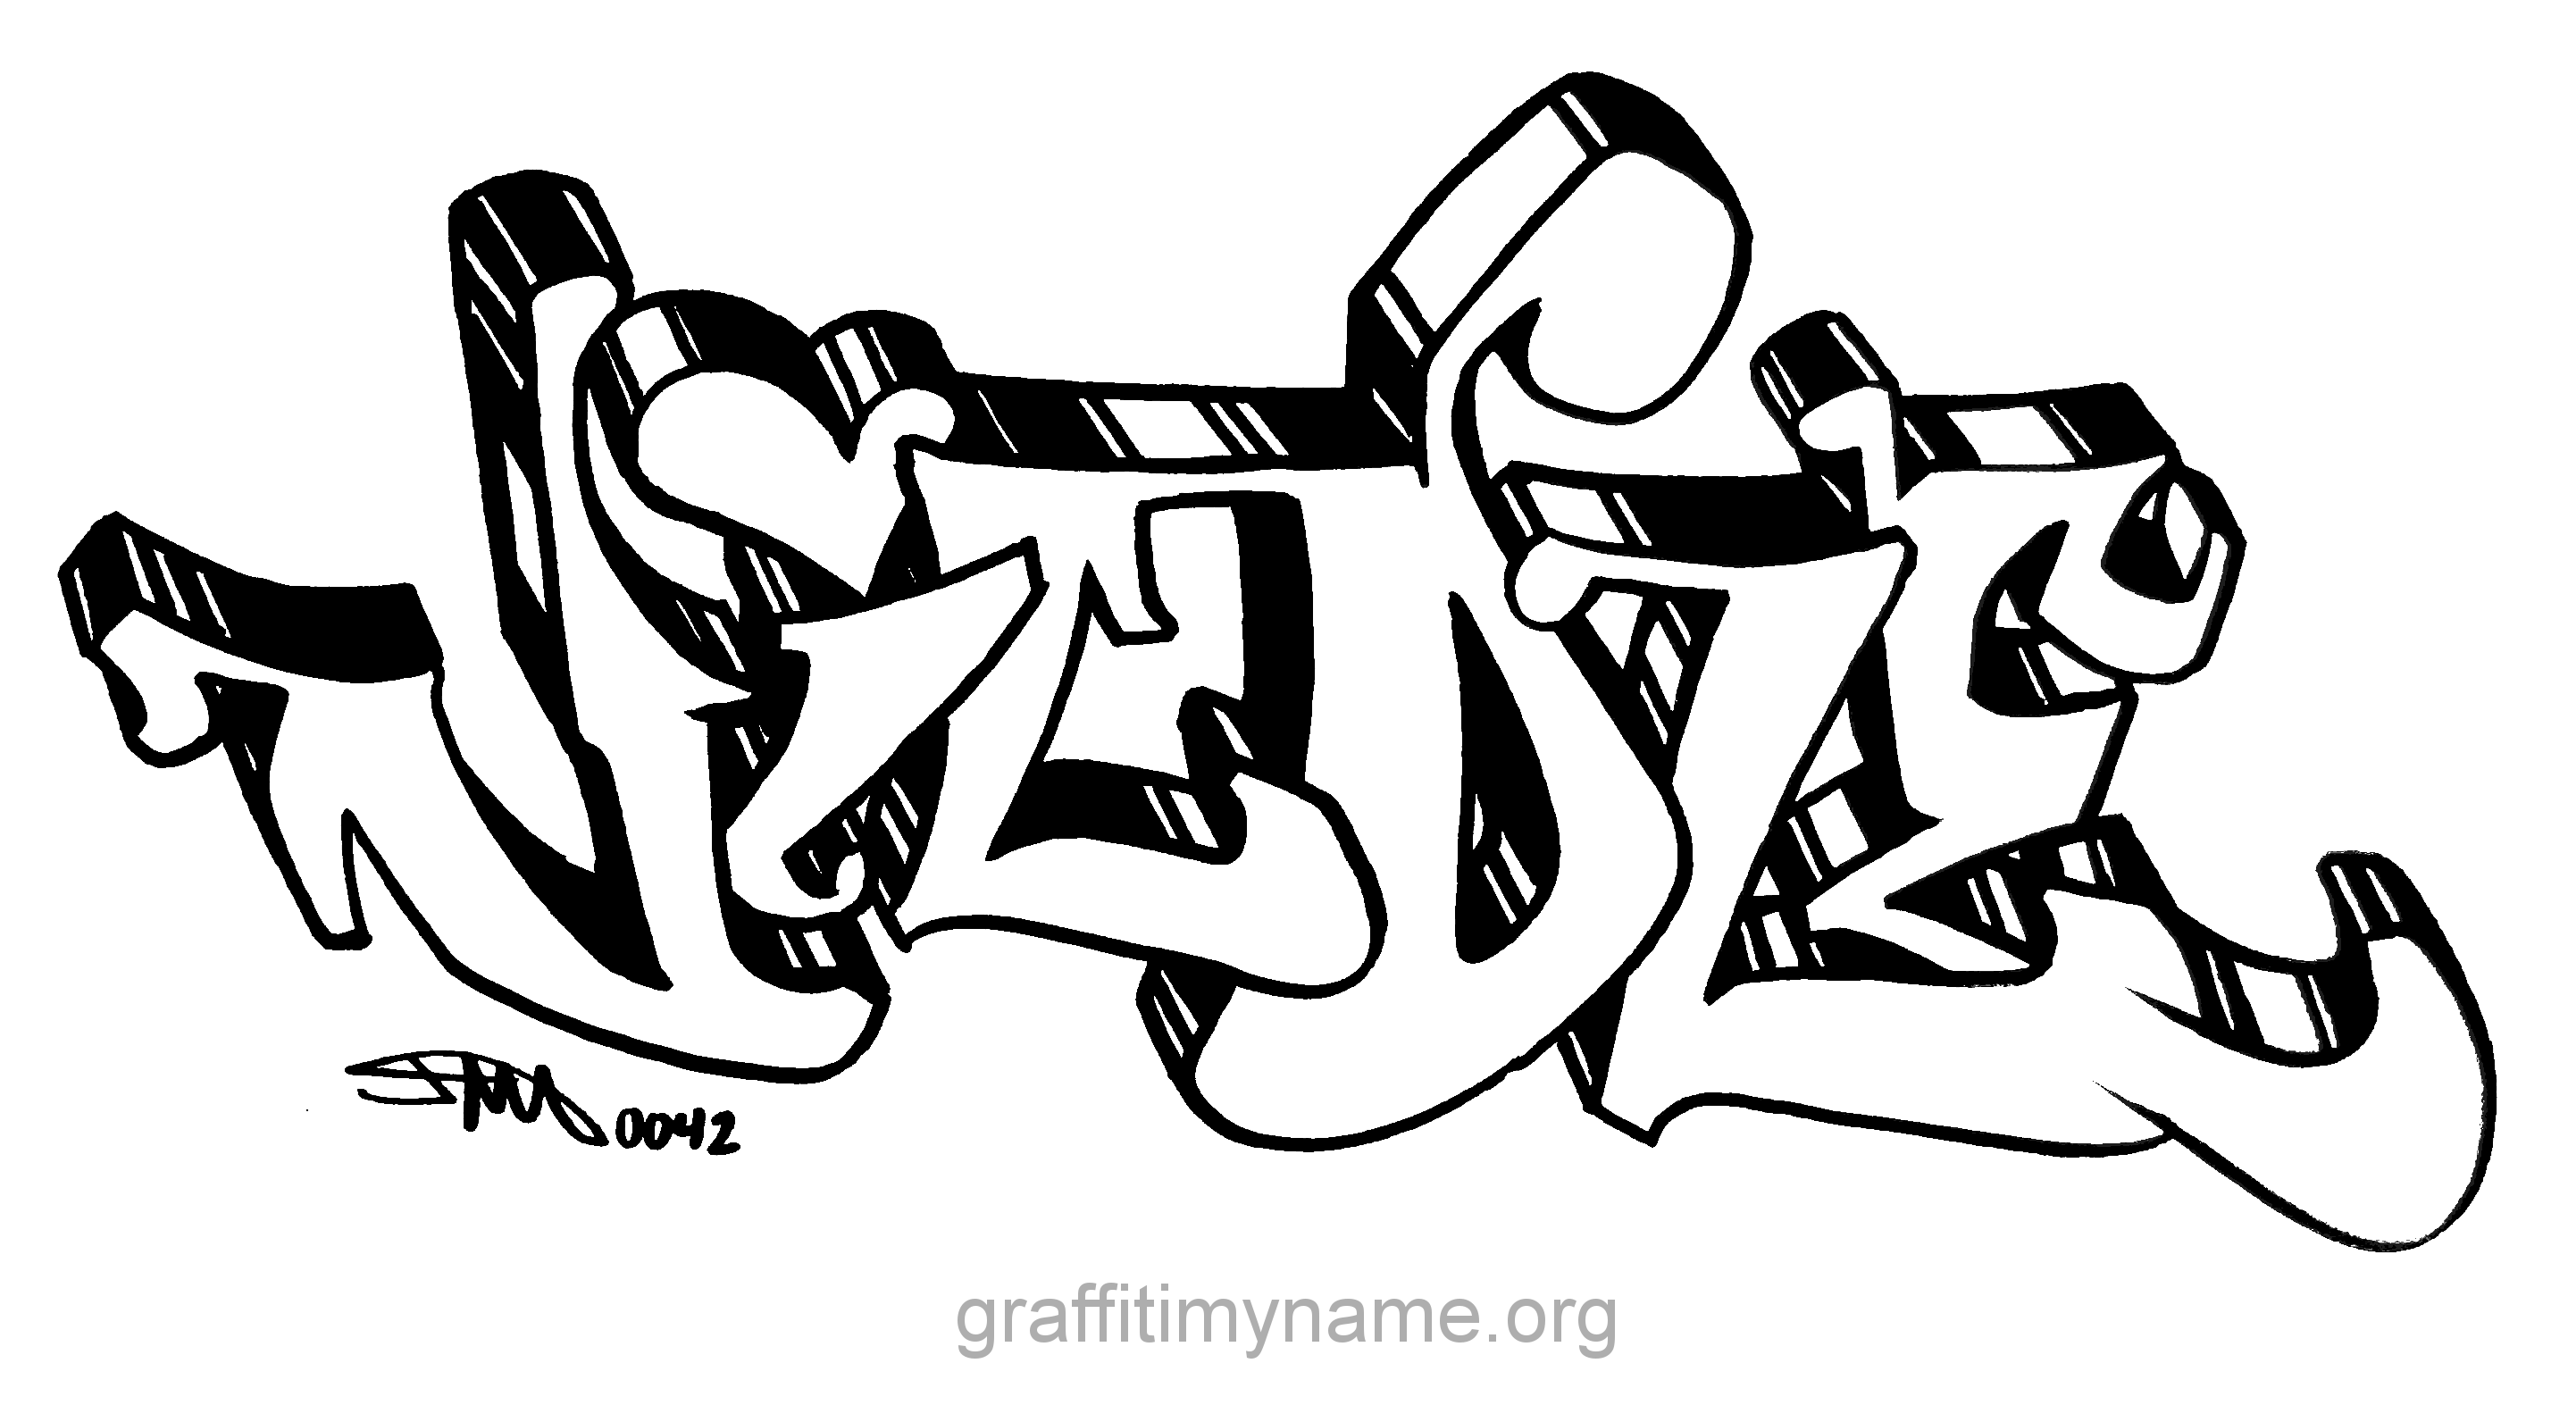 Name In Graffiti Colouring Pages Graffiti Coloring Pages Names